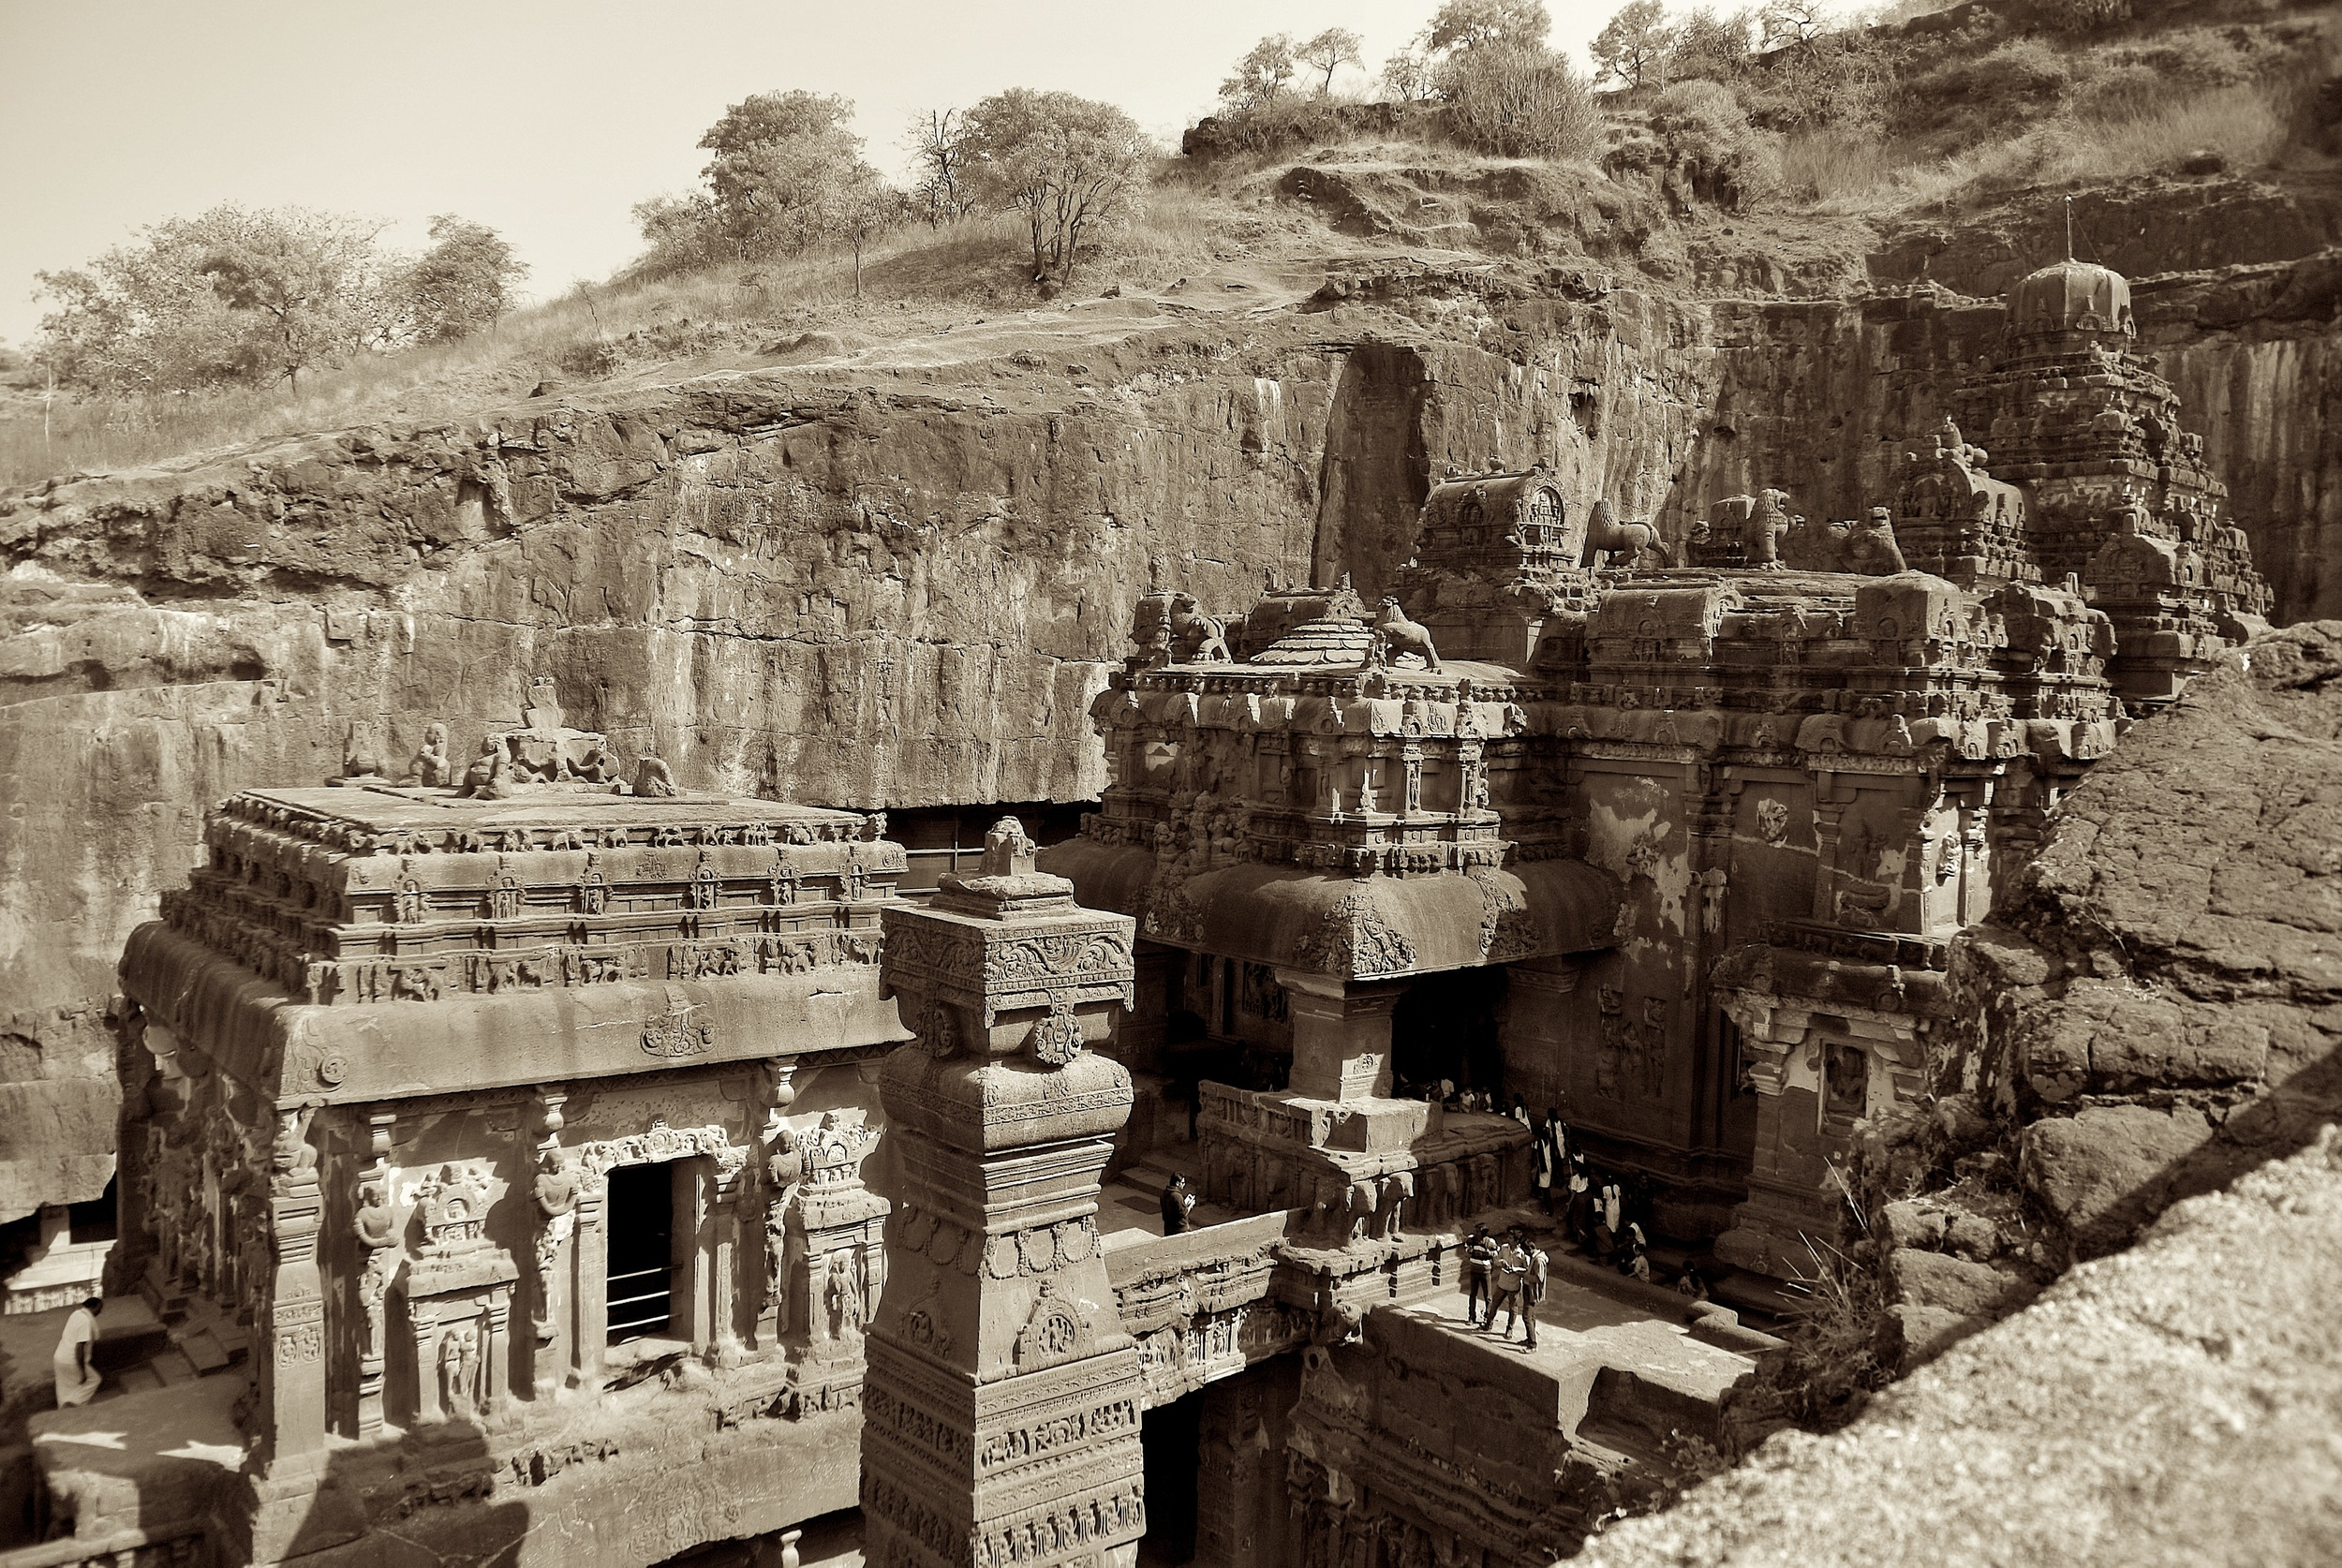 Kailasa, the large Hindu temple in the Ellora Caves complex